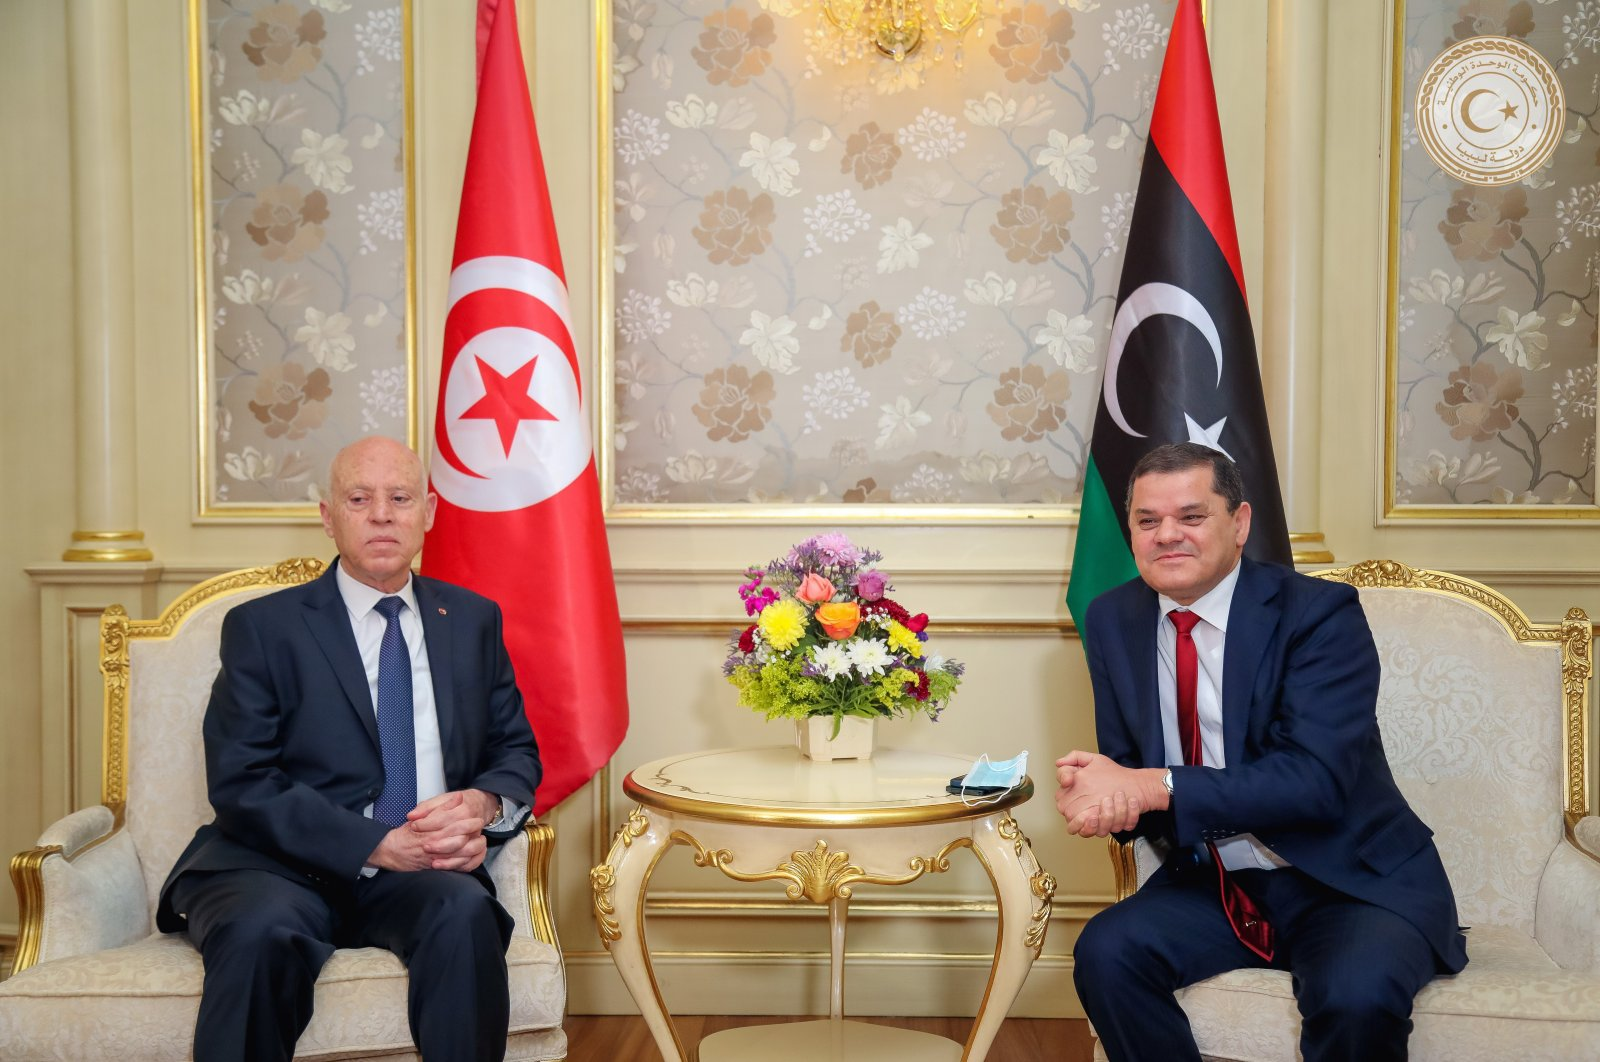 Tunisia's President Kais Saied meets with Libya's Prime Minister Abdulhamid Dbeibeh in Tripoli, Libya March 17, 2021. (Media Office of the Prime Minister via Reuters)